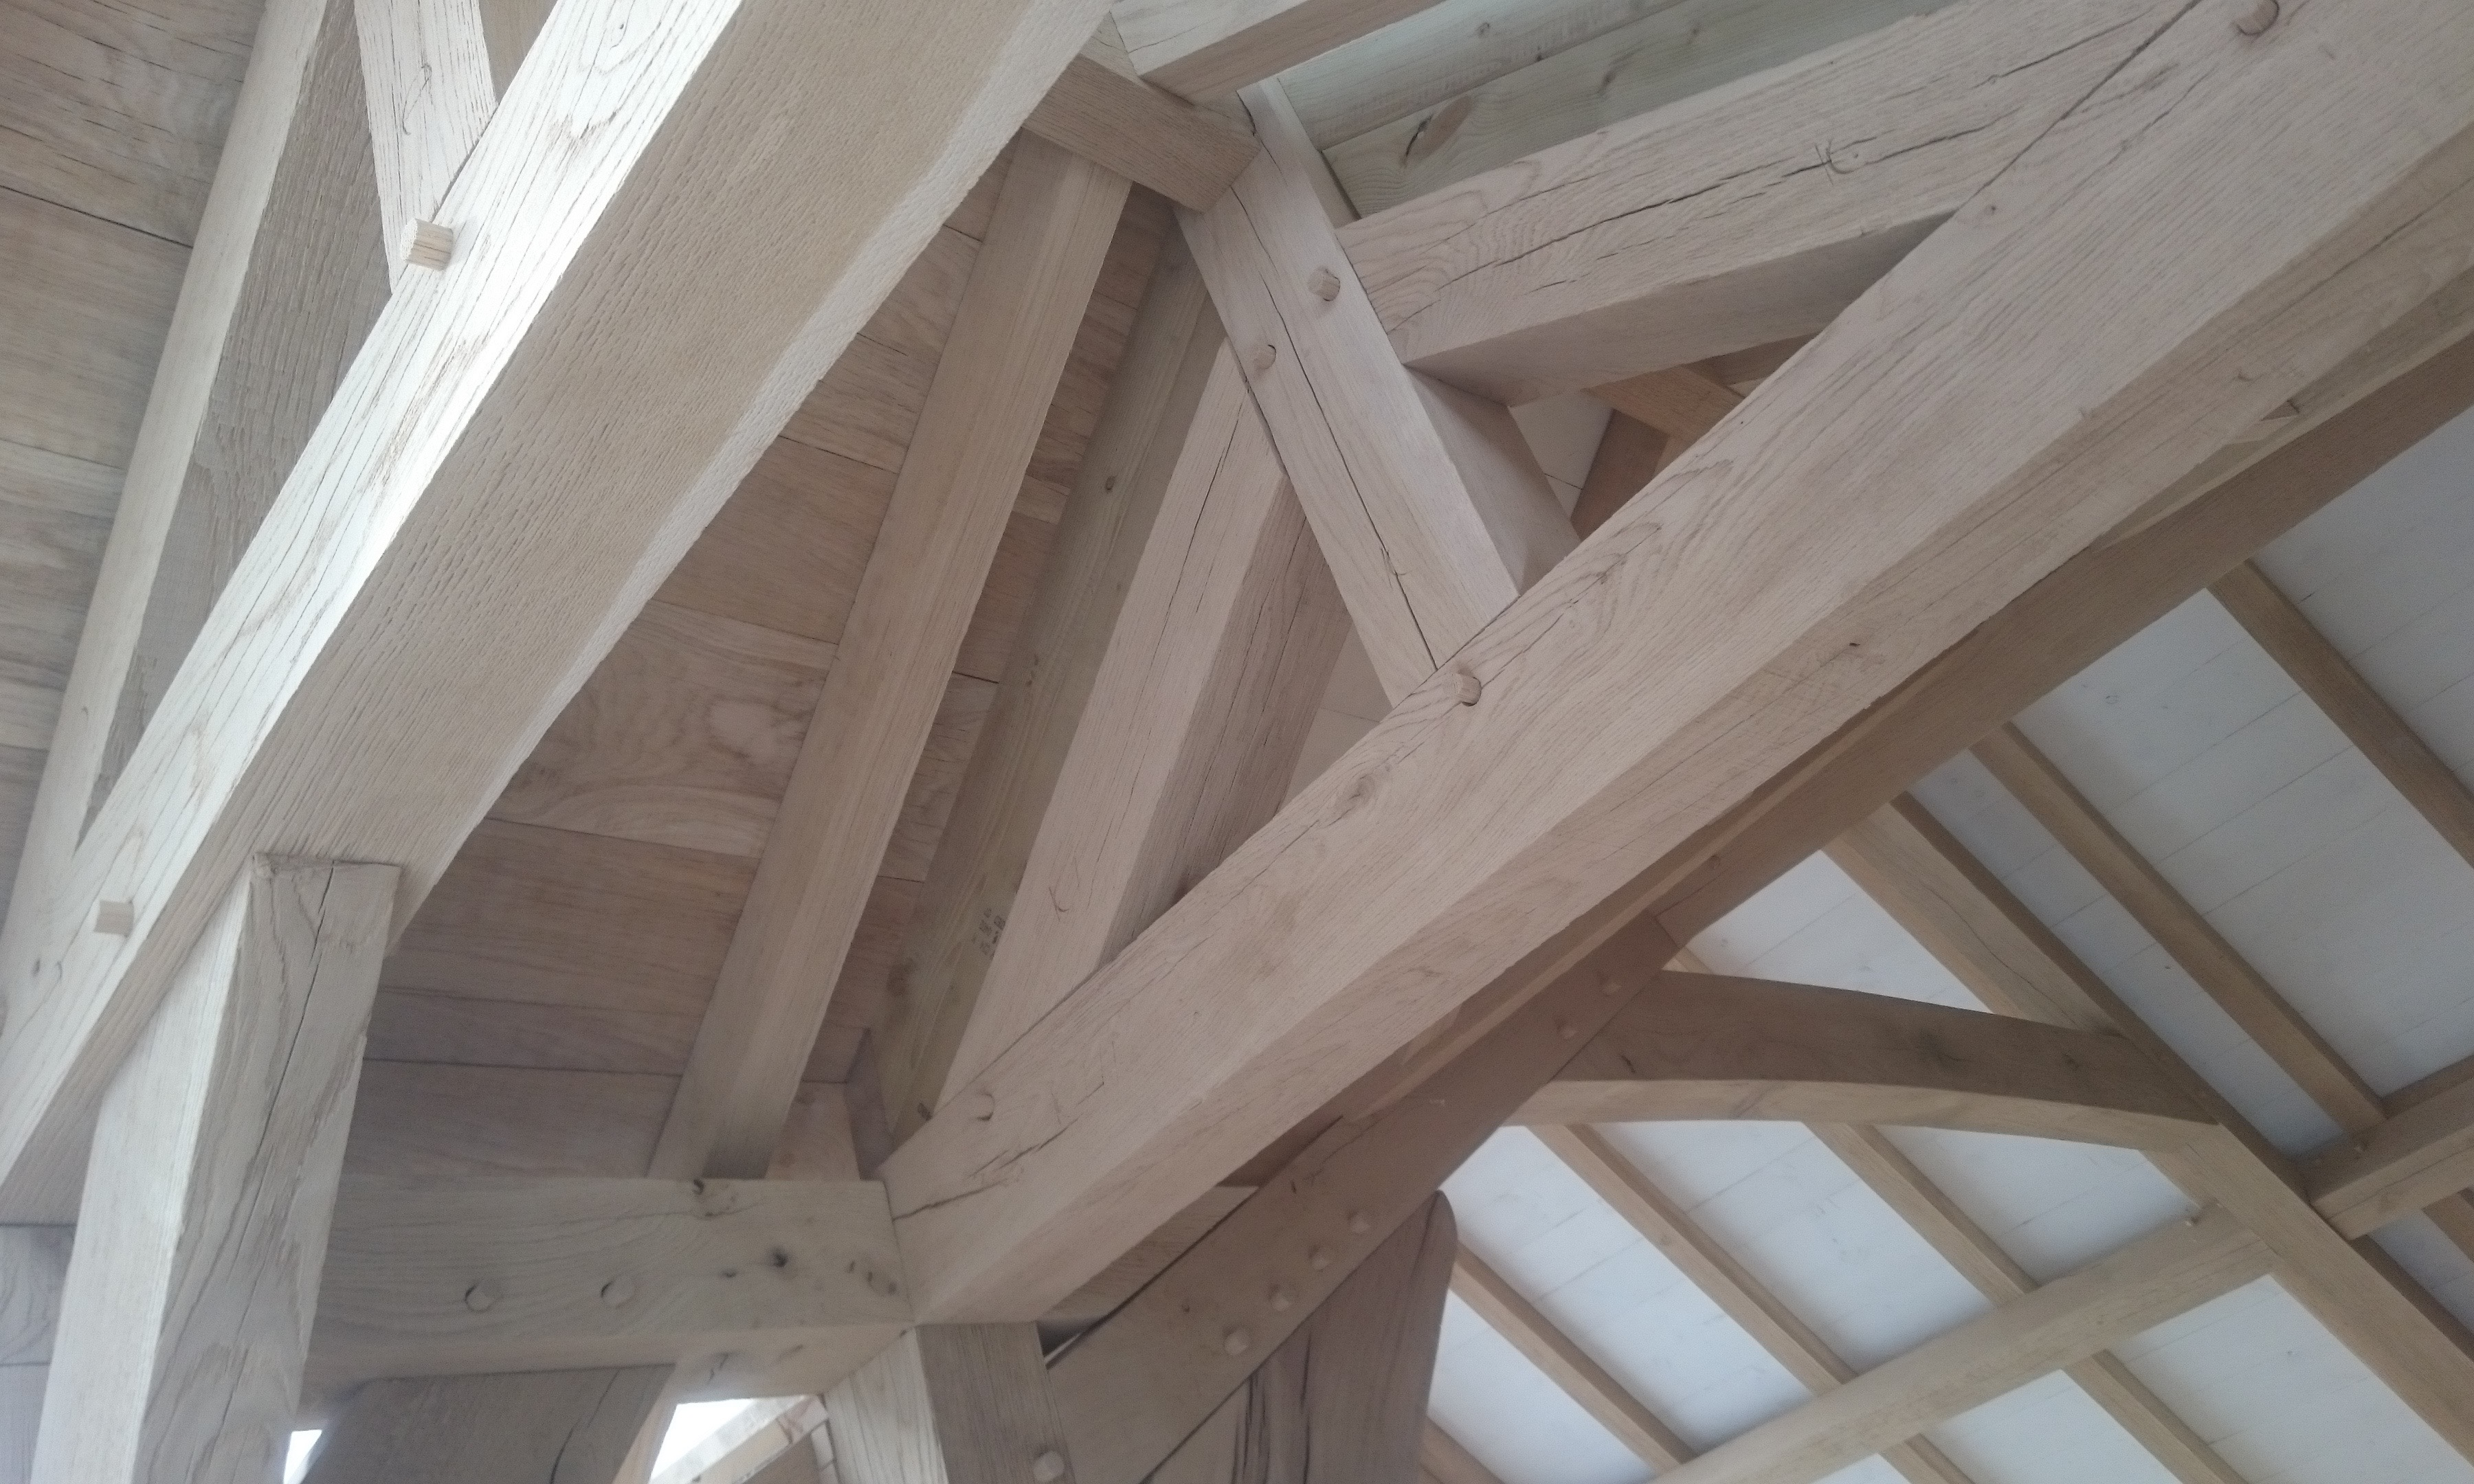 oak frame roof structure